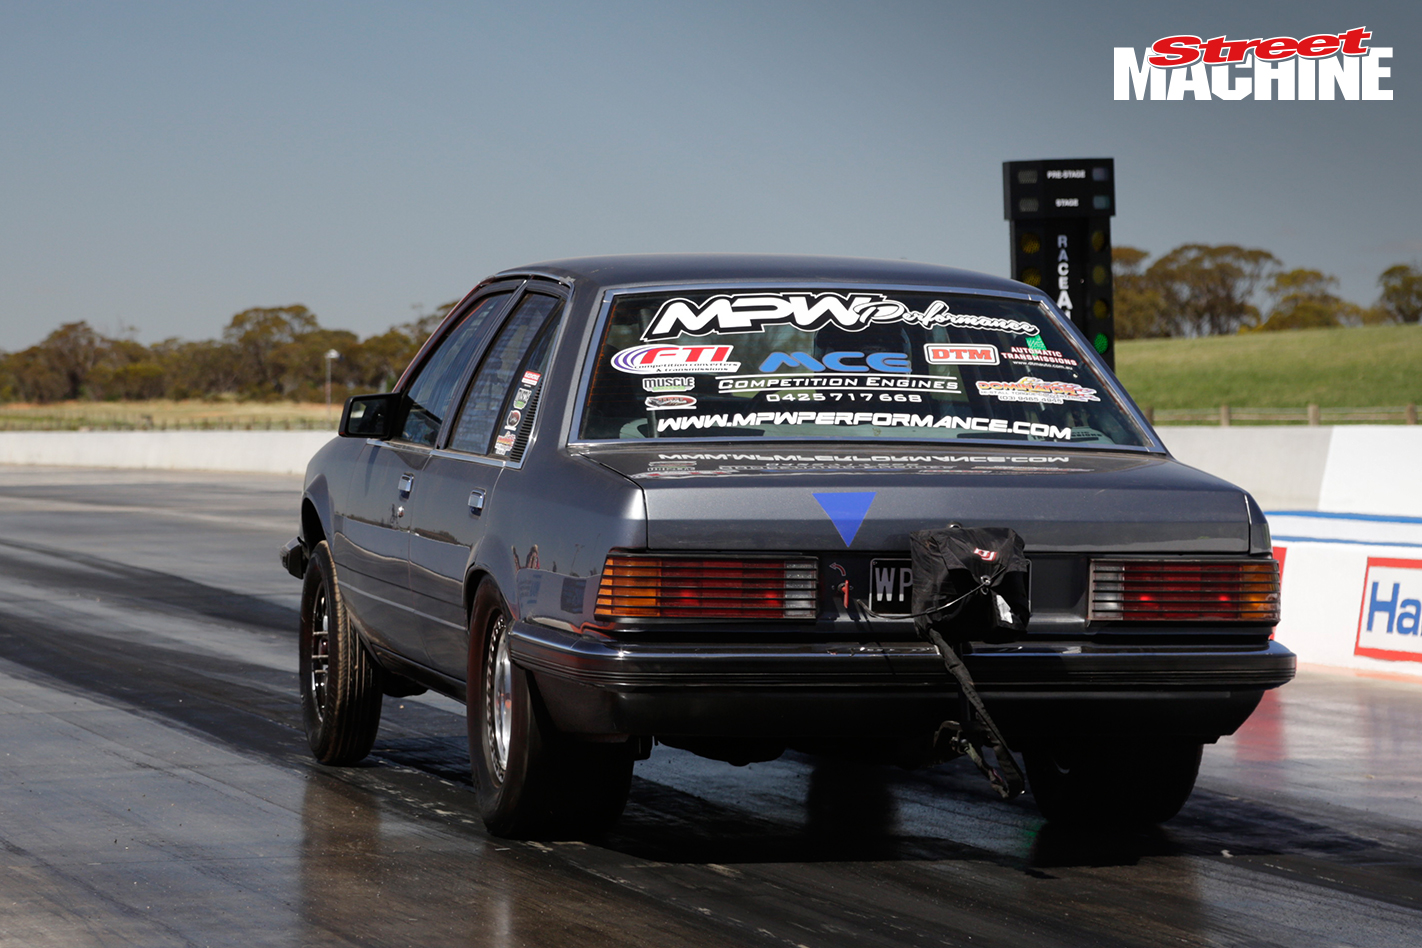 VH Commodore Supercharged LS3 7